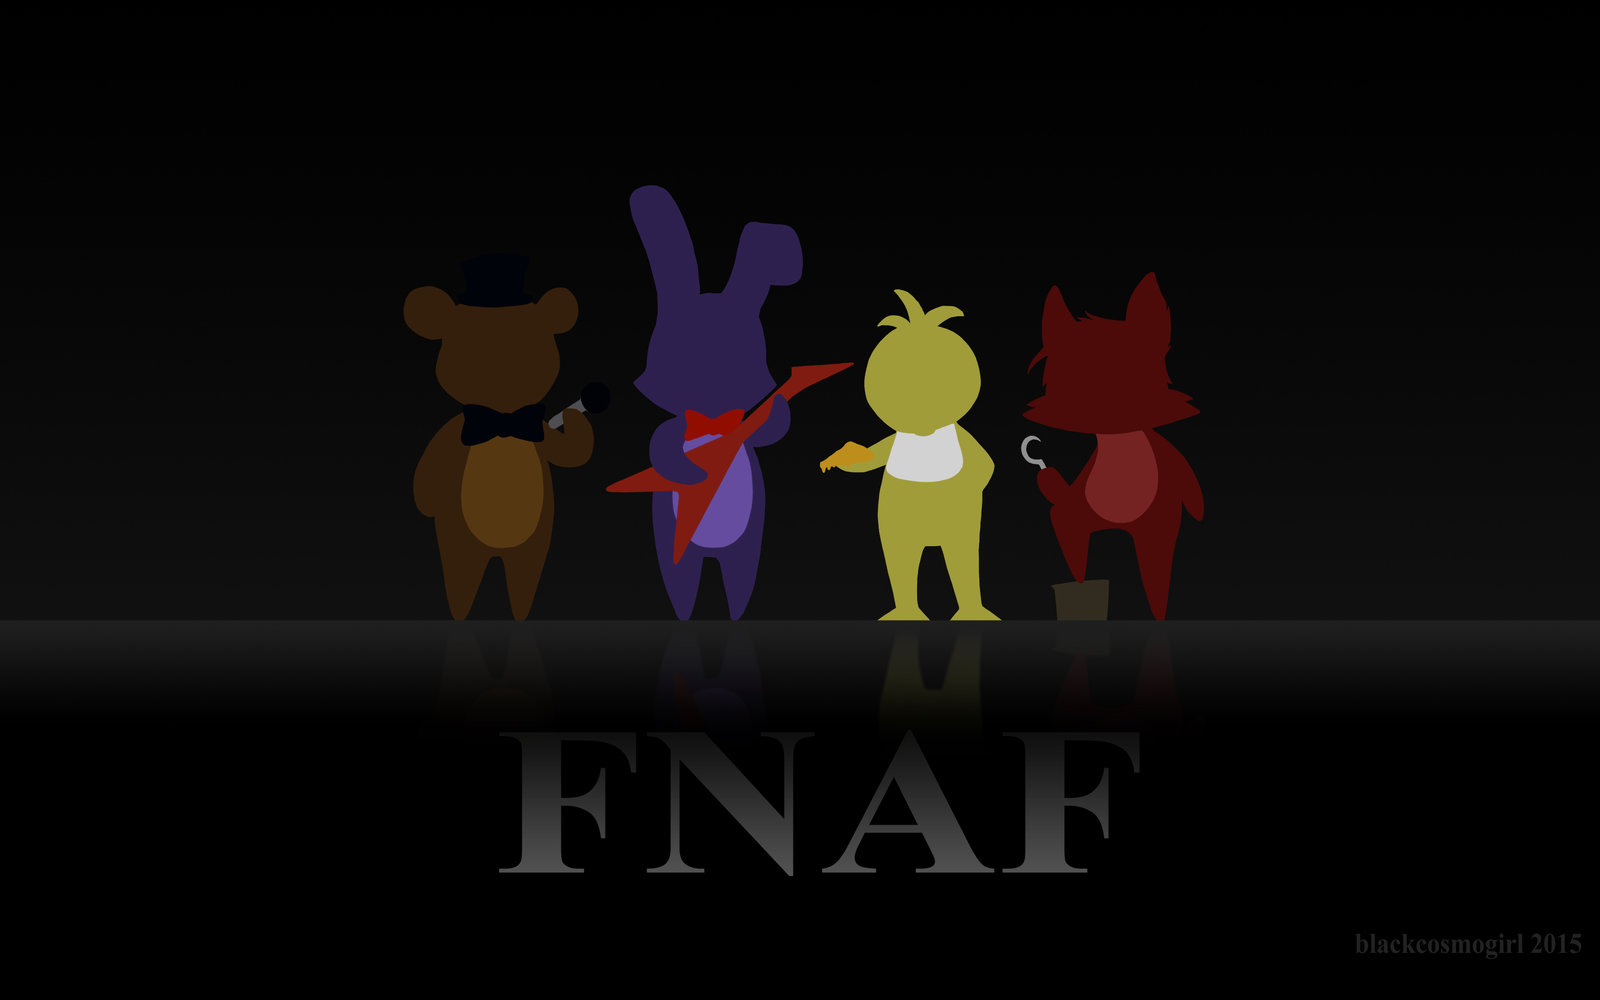 fnaf desktop wallpaper wallpapersafari